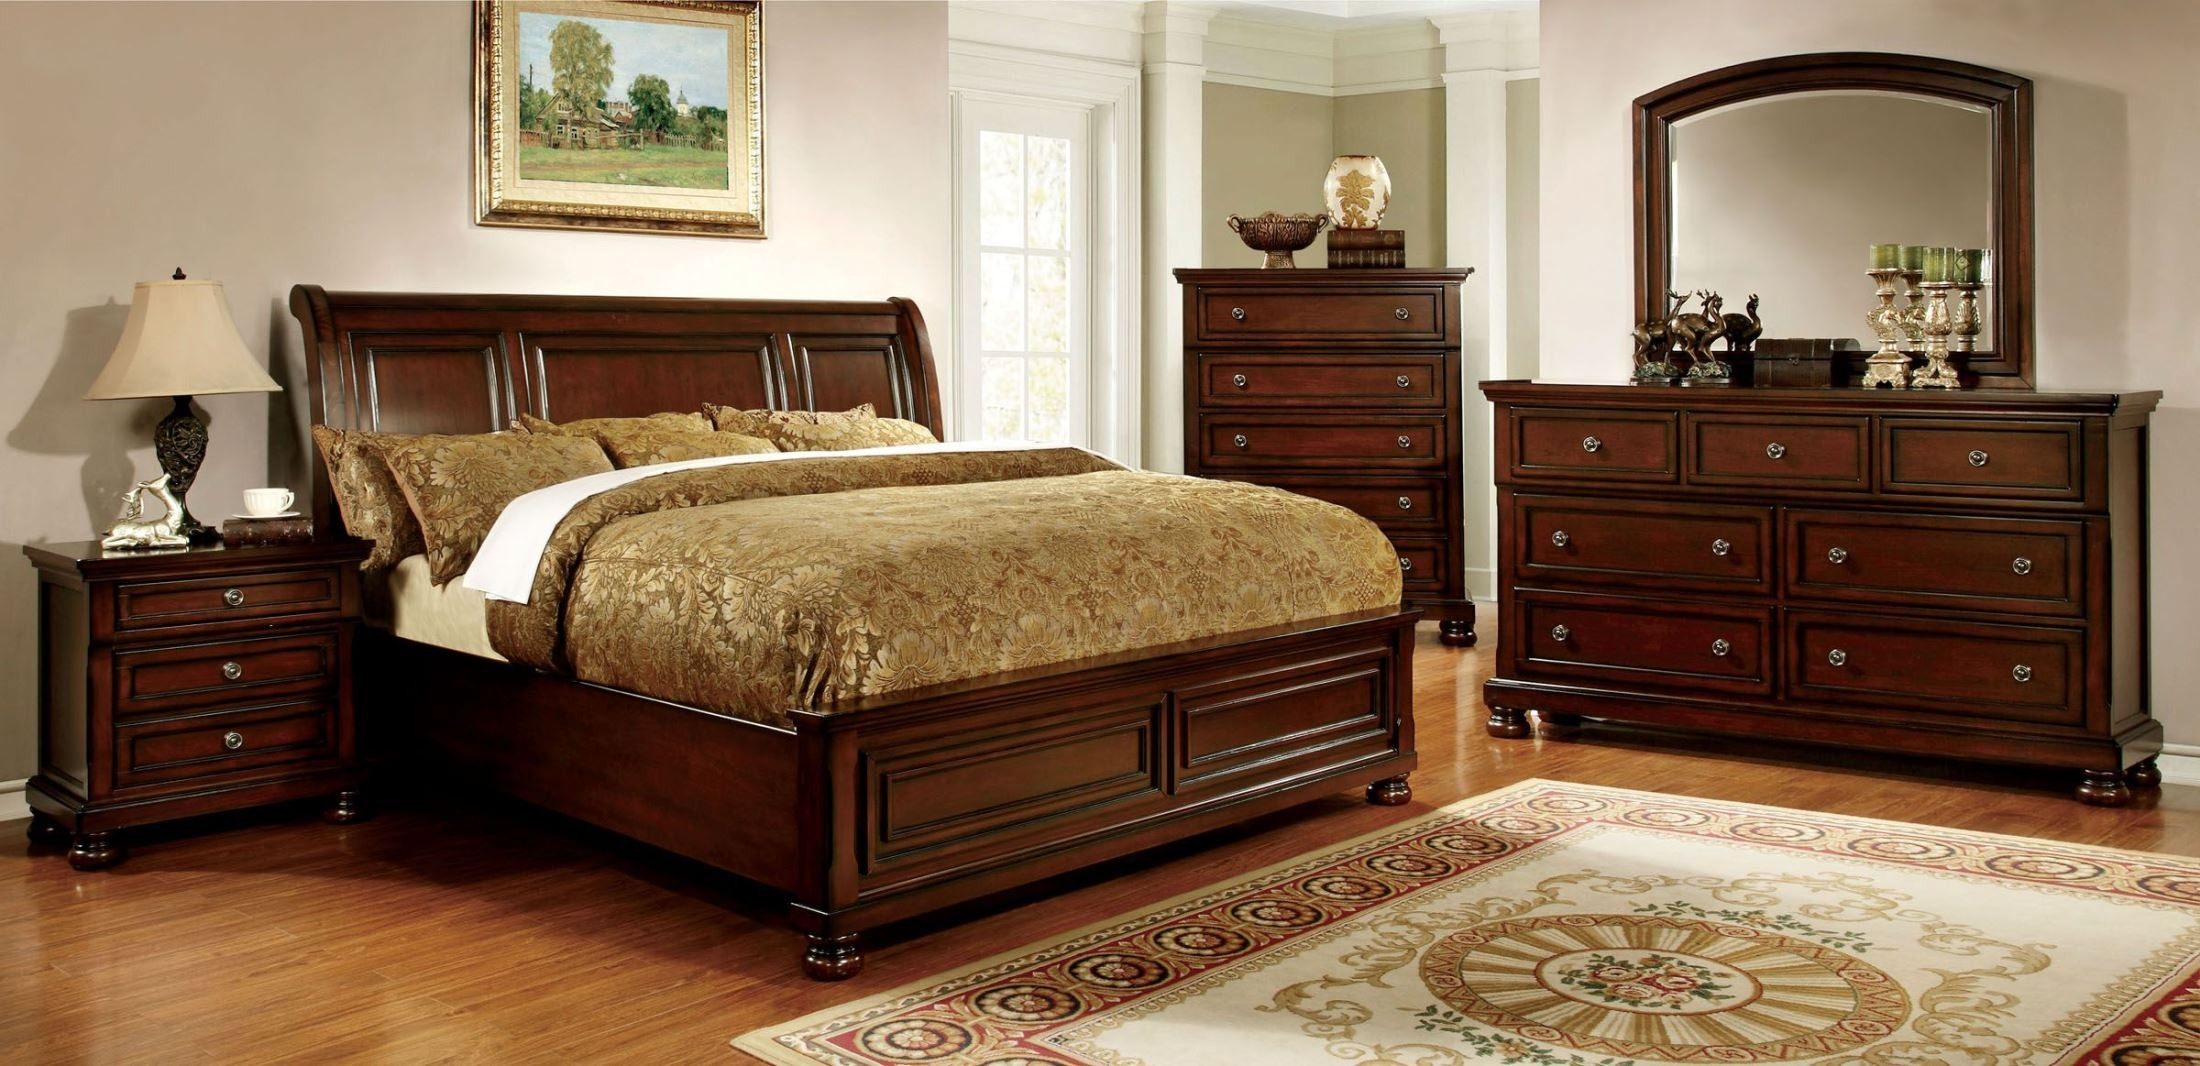 Northville Dark Cherry Bedroom Set from Furniture of